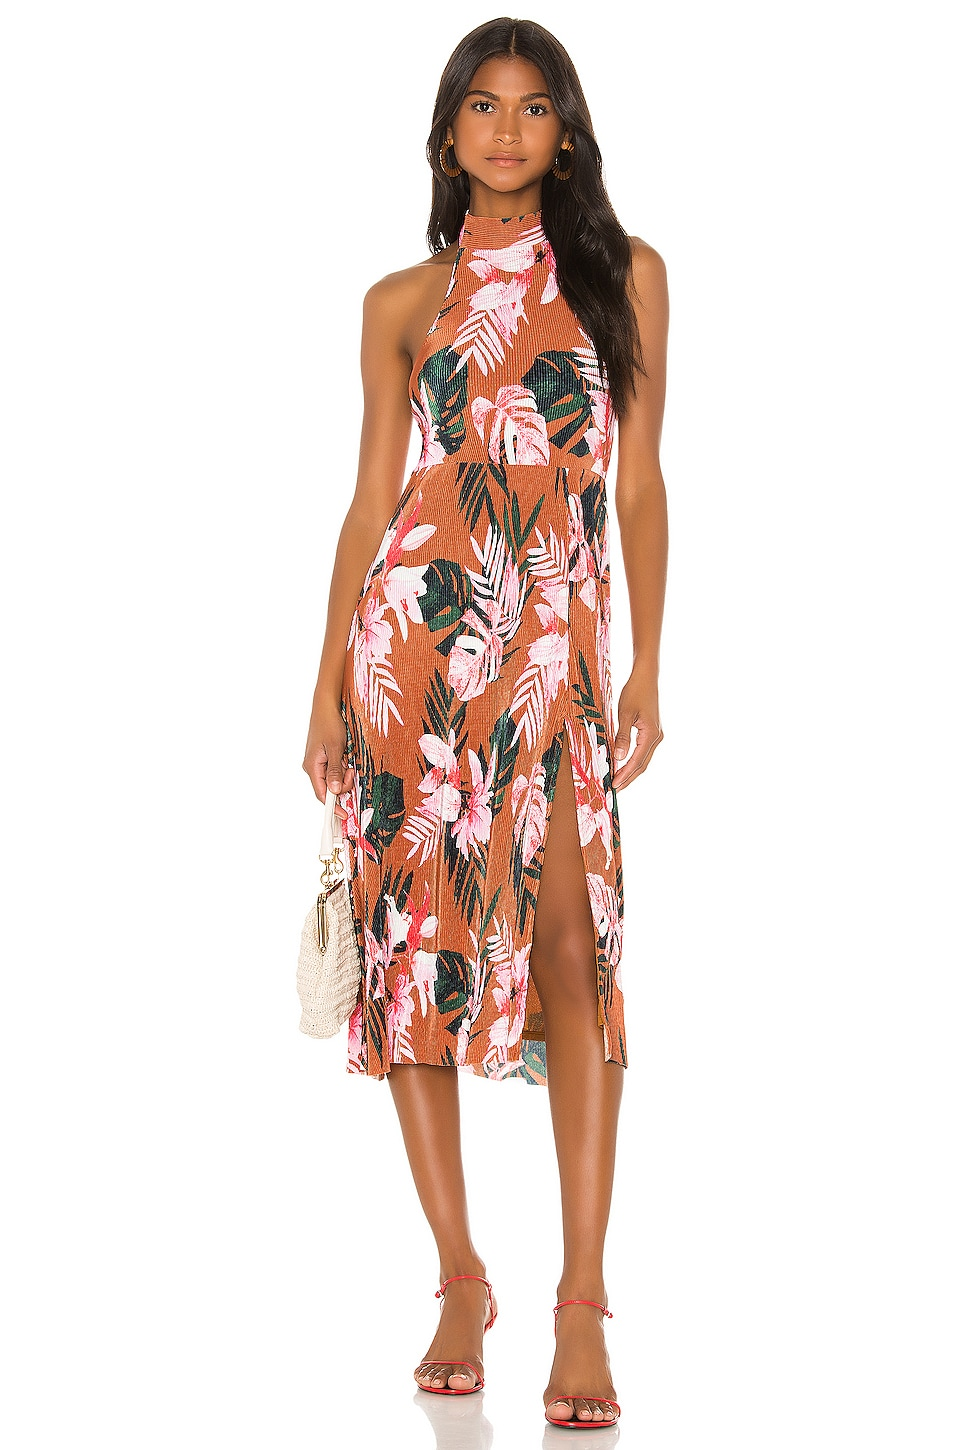 Camila Coelho Cassy Midi Dress in Floral Tropics